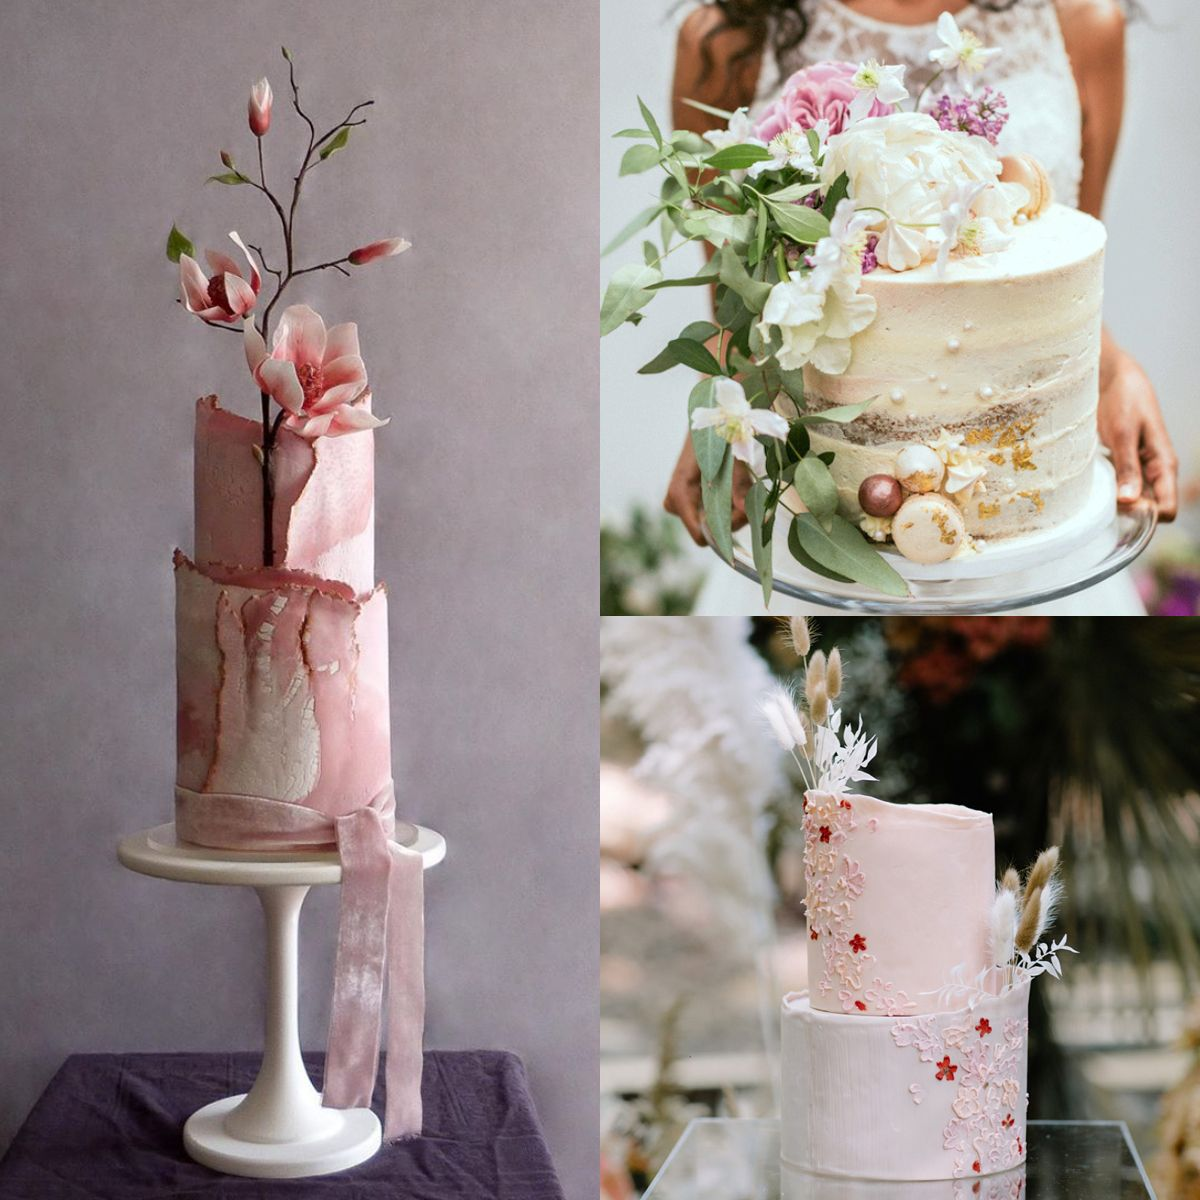 Wedding Cake Trends 2020.Wedding Trends 2020 Sustainability And Individuality Big